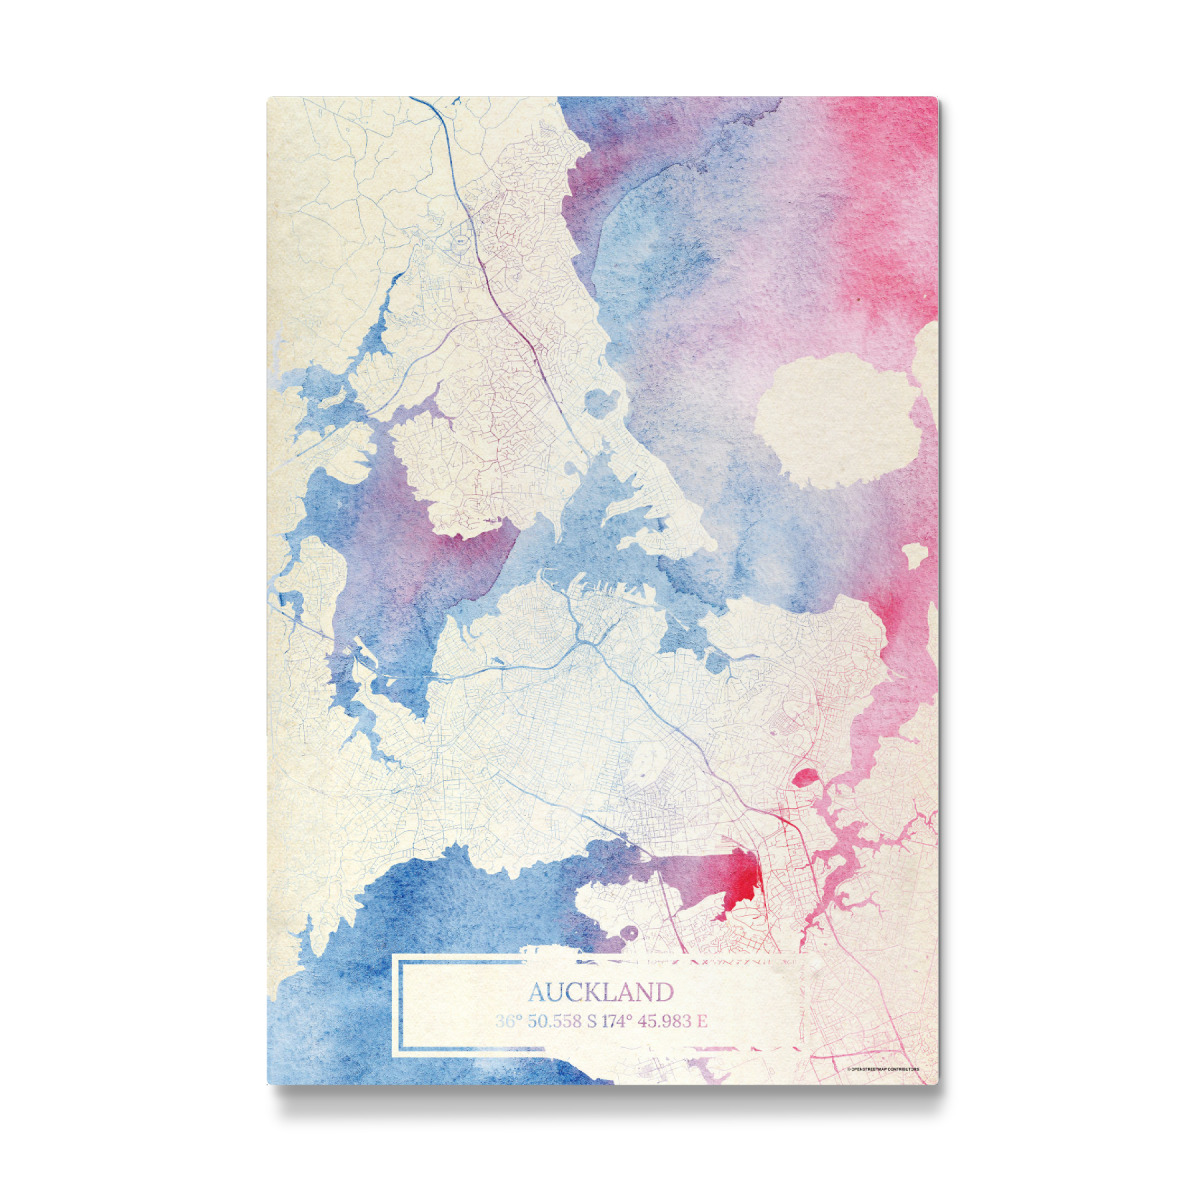 Auckland Neuseeland Map Rose And Serenity I als Galerie ...